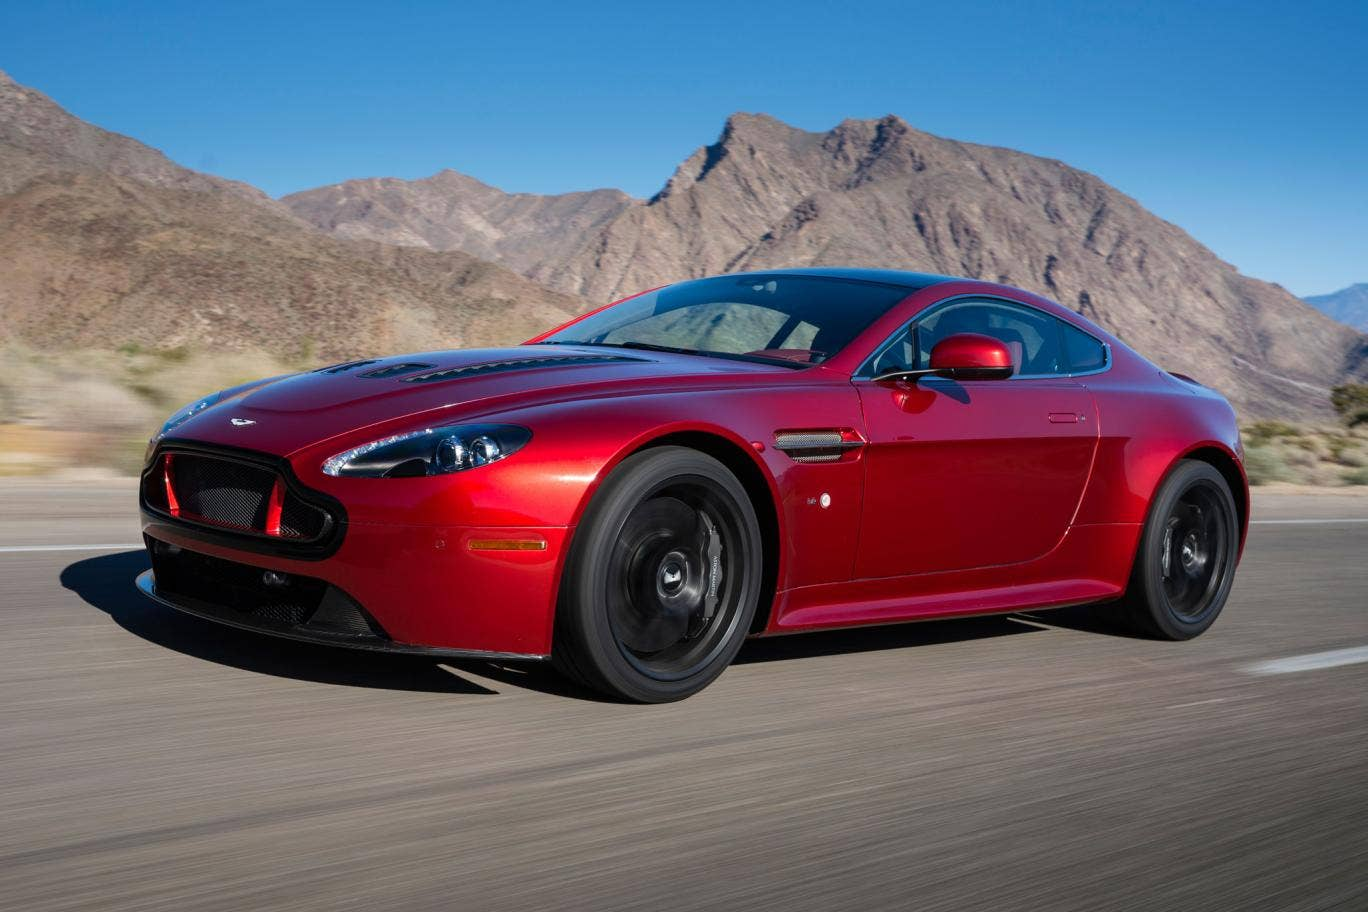 The V12 Vantage S marries the company's most compact body with its most powerful engine